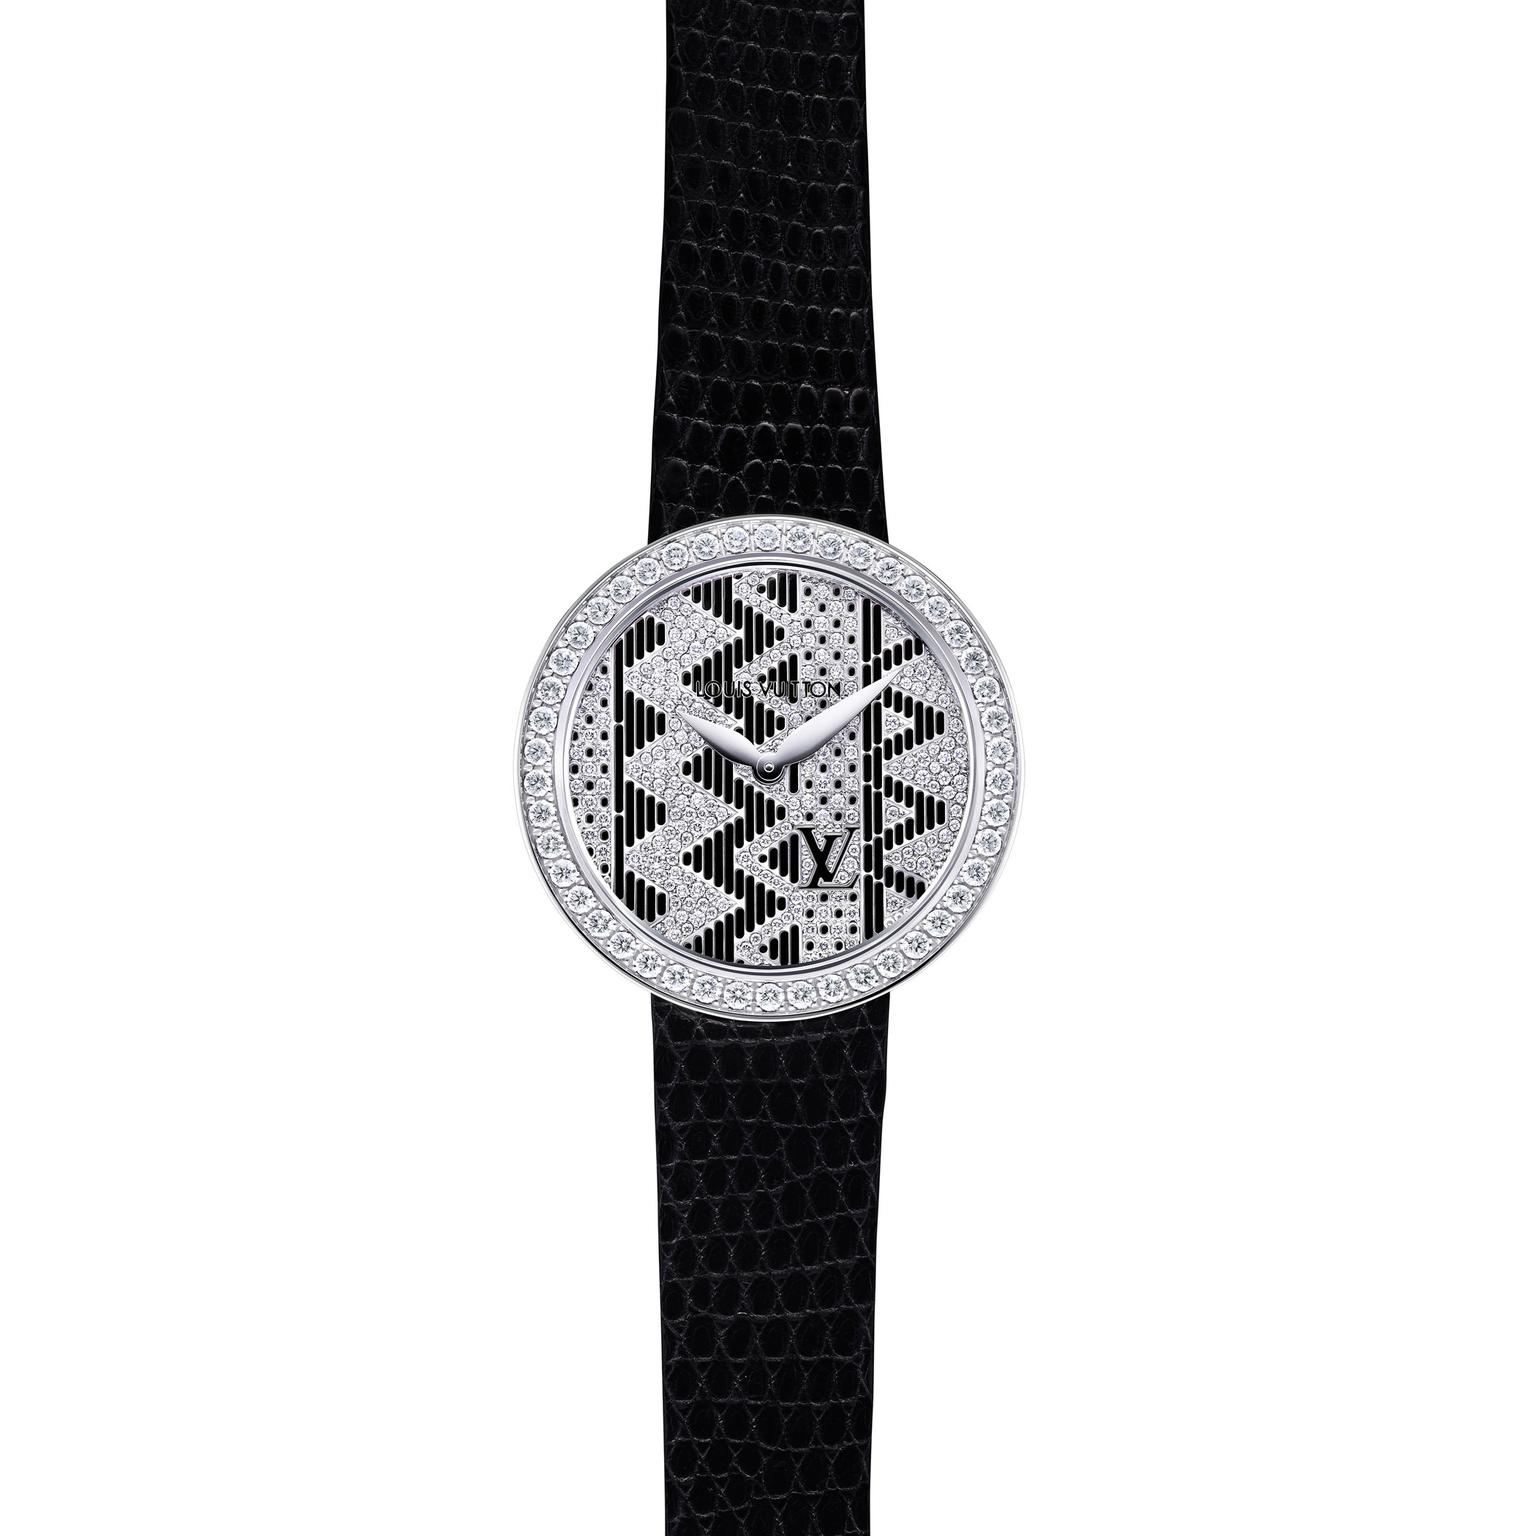 Louis Vuitton Joaillerie Chevron ladies watch in black_zoom